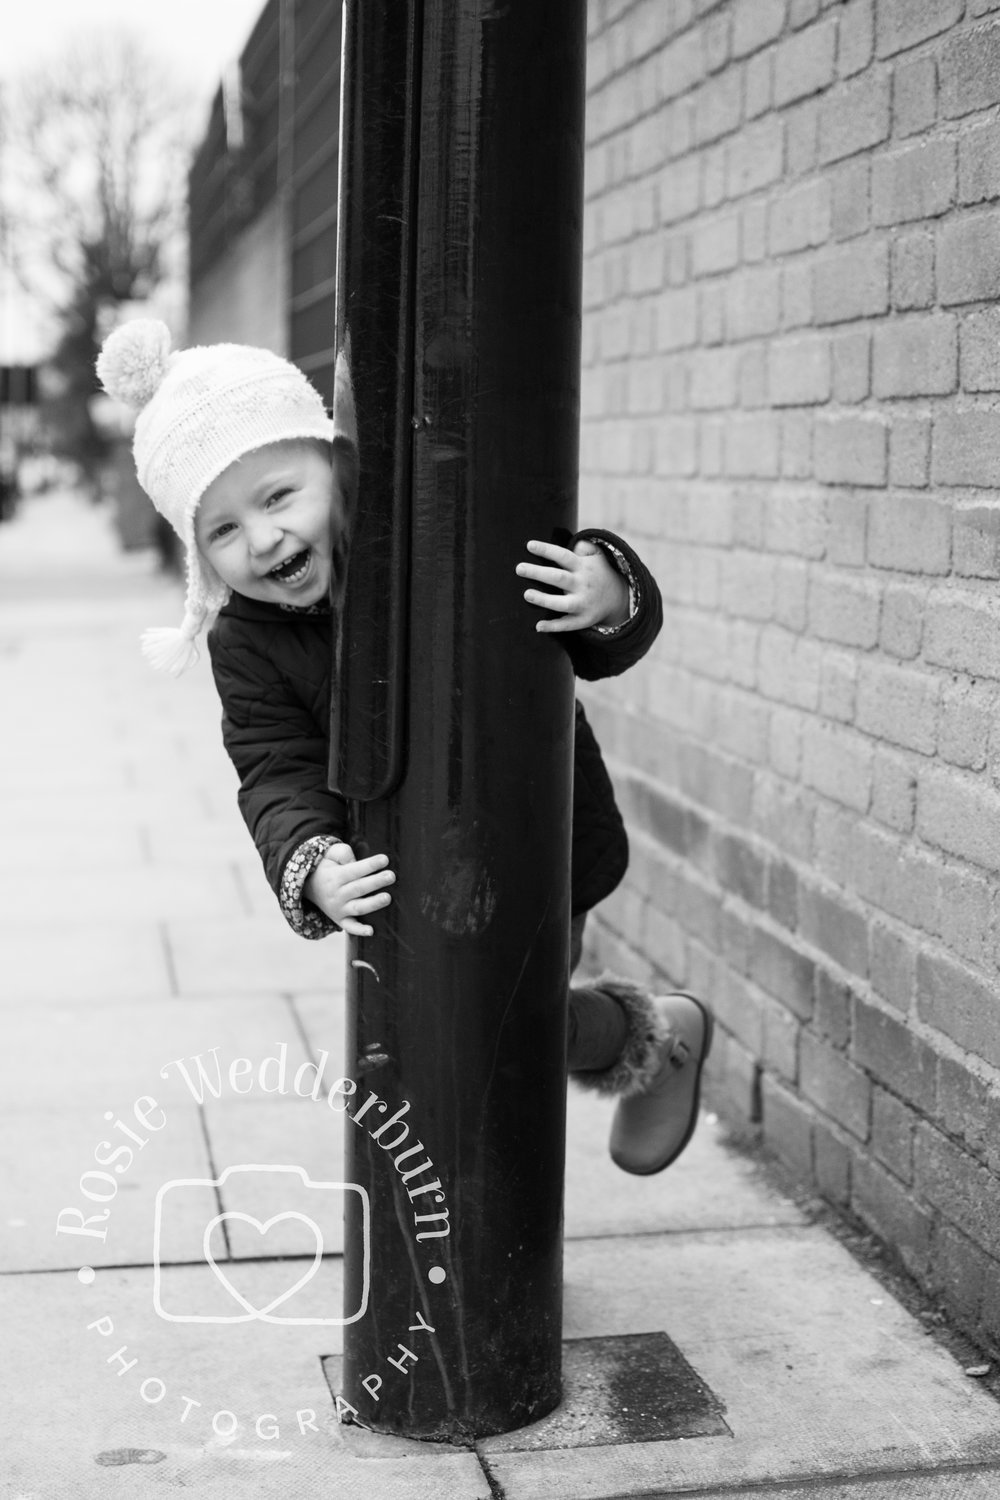 Always have your camera ready in advance so you don't miss spontaneous moments like this gorgeous girl swinging around a lamppost with a cheeky smile!